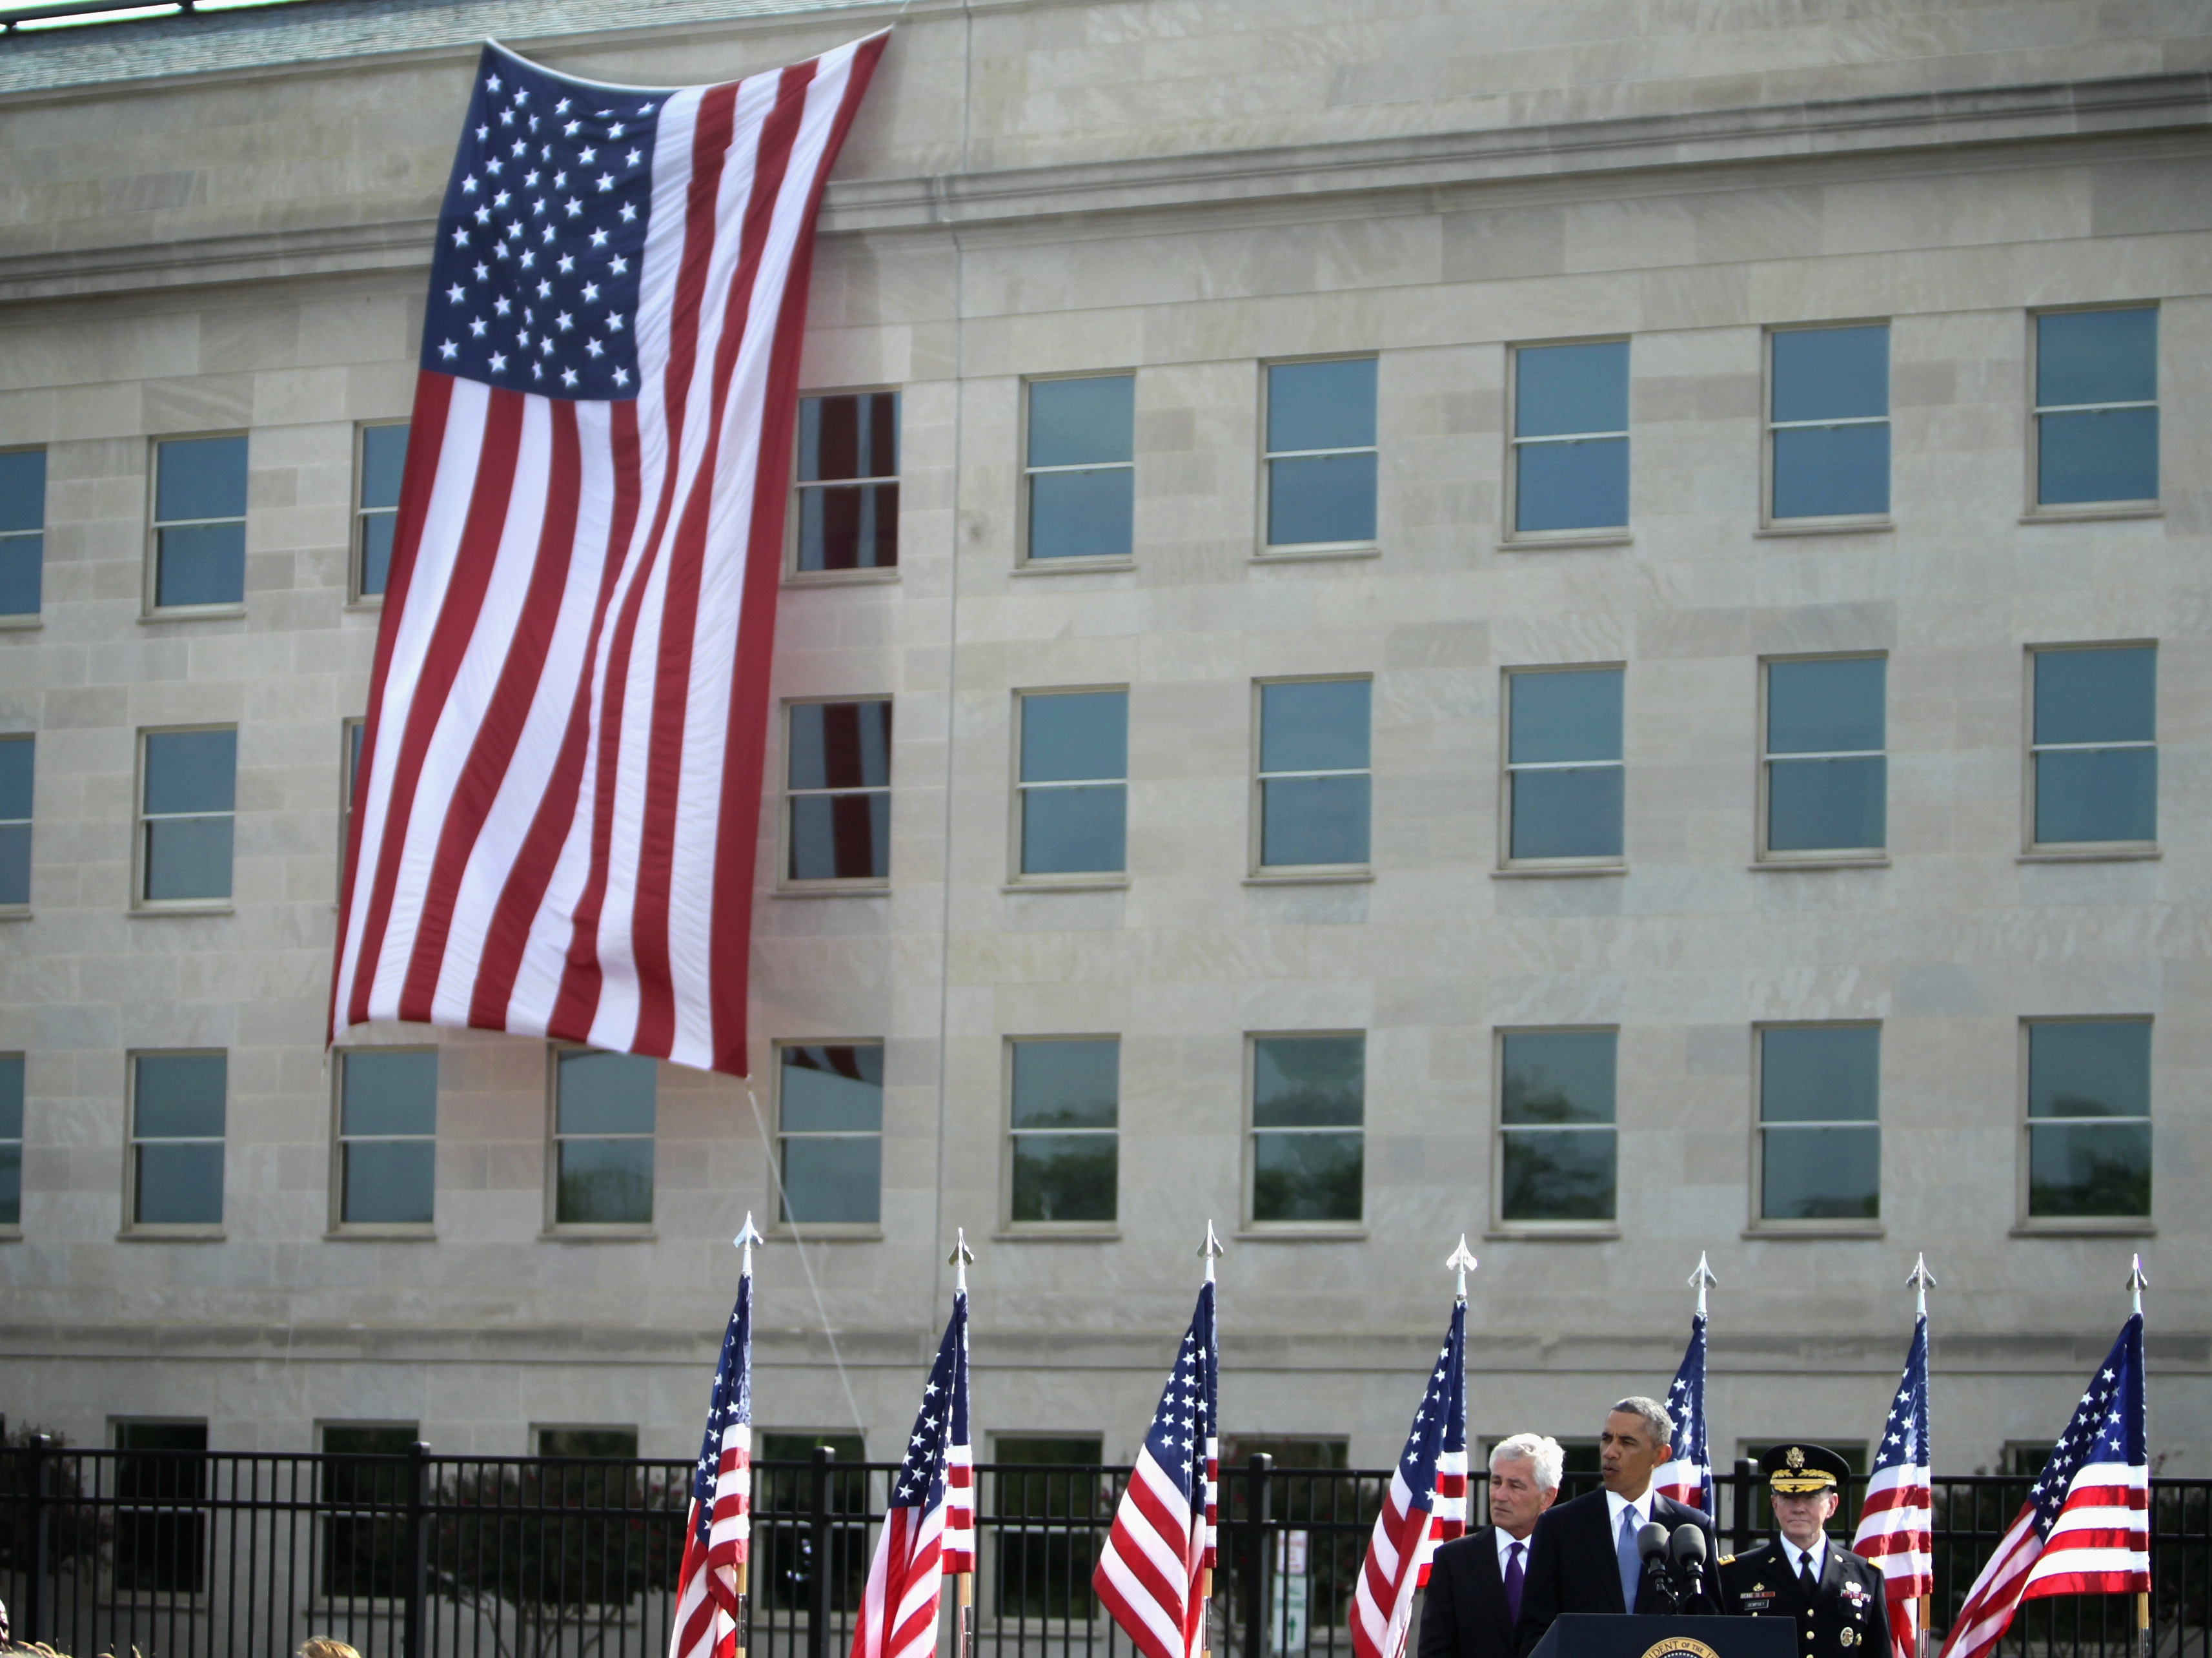 President Barack Obama (2nd L) speaks as Secretary of Defense Chuck Hagel (L) and Chairman of the Joint Chiefs Gen. Martin Dempsey (R) listen during a ceremony to mark the 13th anniversary of the 9/11 terrorists attacks at the Pentagon Memorial September 11, 2014 in front of the Pentagon in Arlington, Virginia. (Alex Wong/Getty Images)